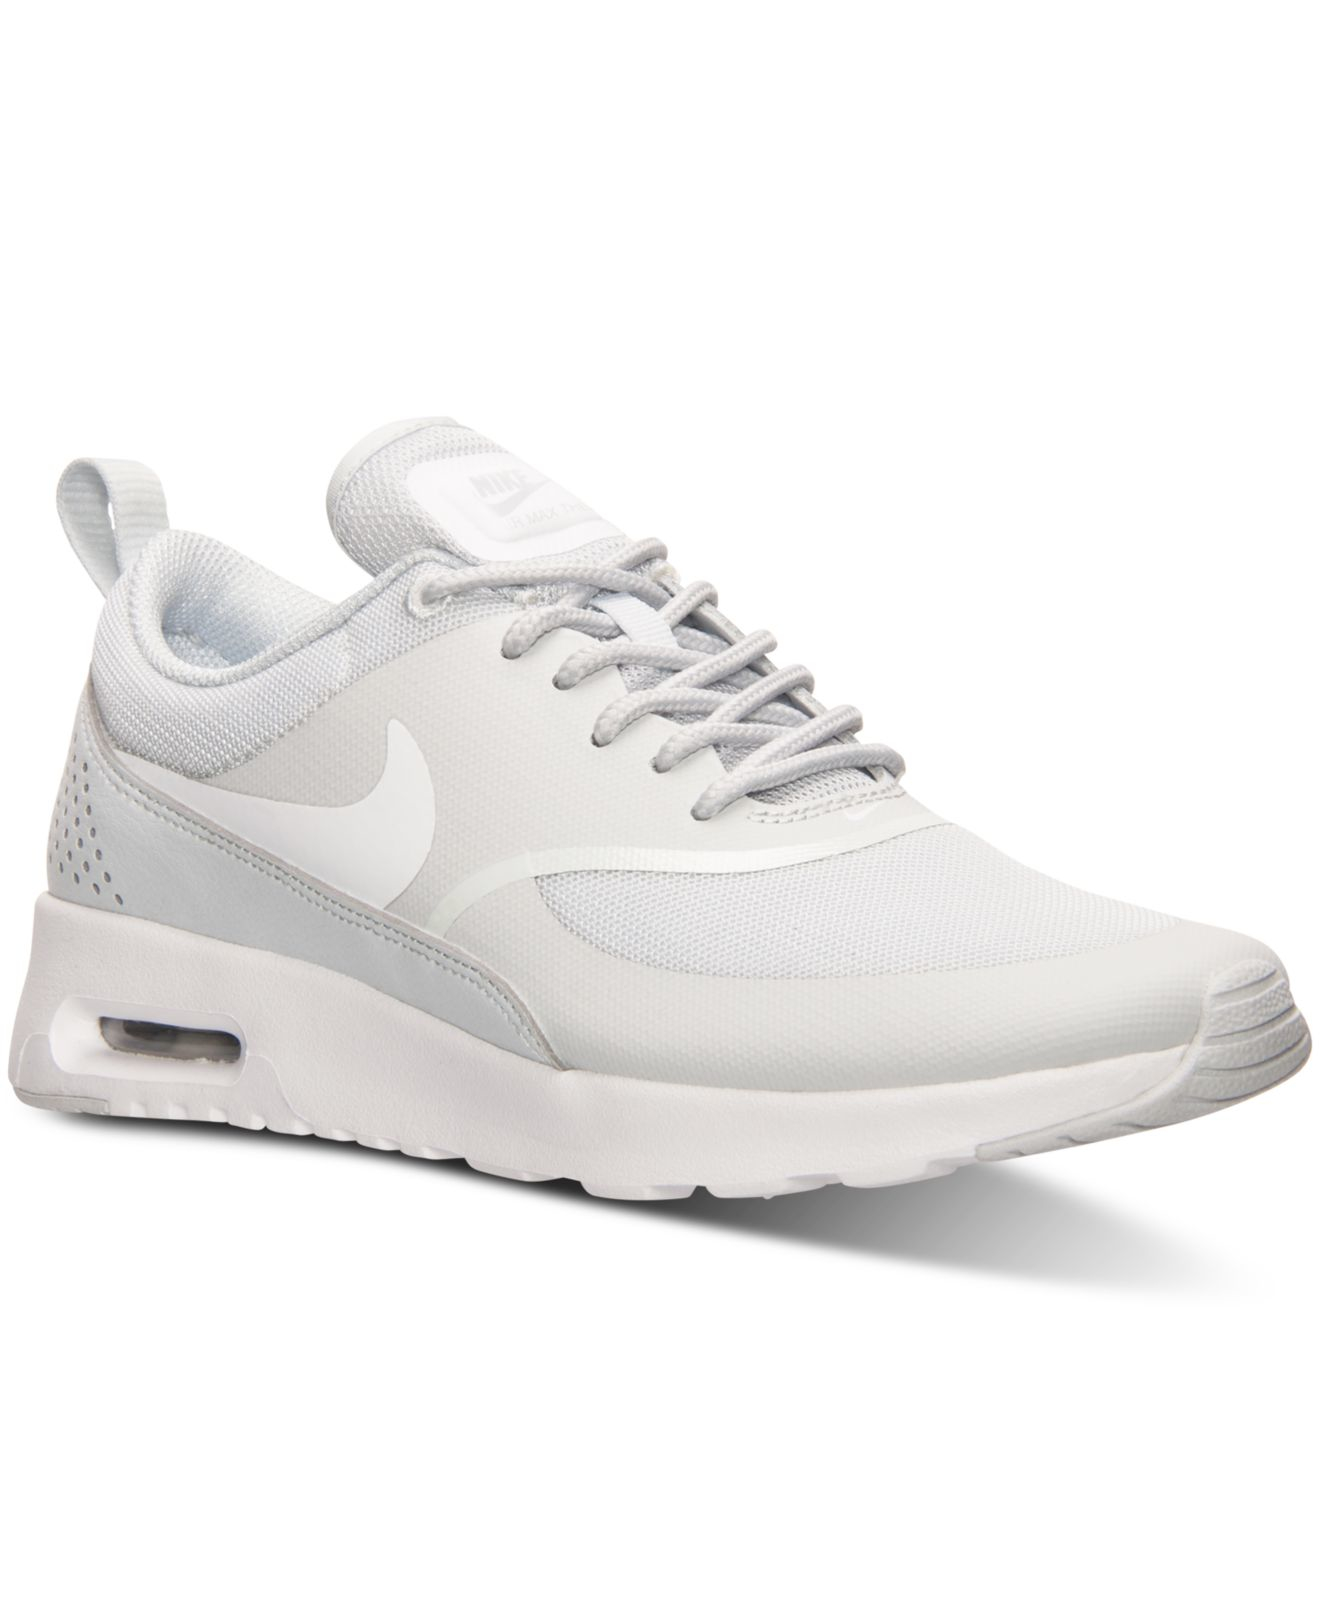 Lyst - Nike Women s Air Max Thea Running Sneakers From Finish Line ... e04844428